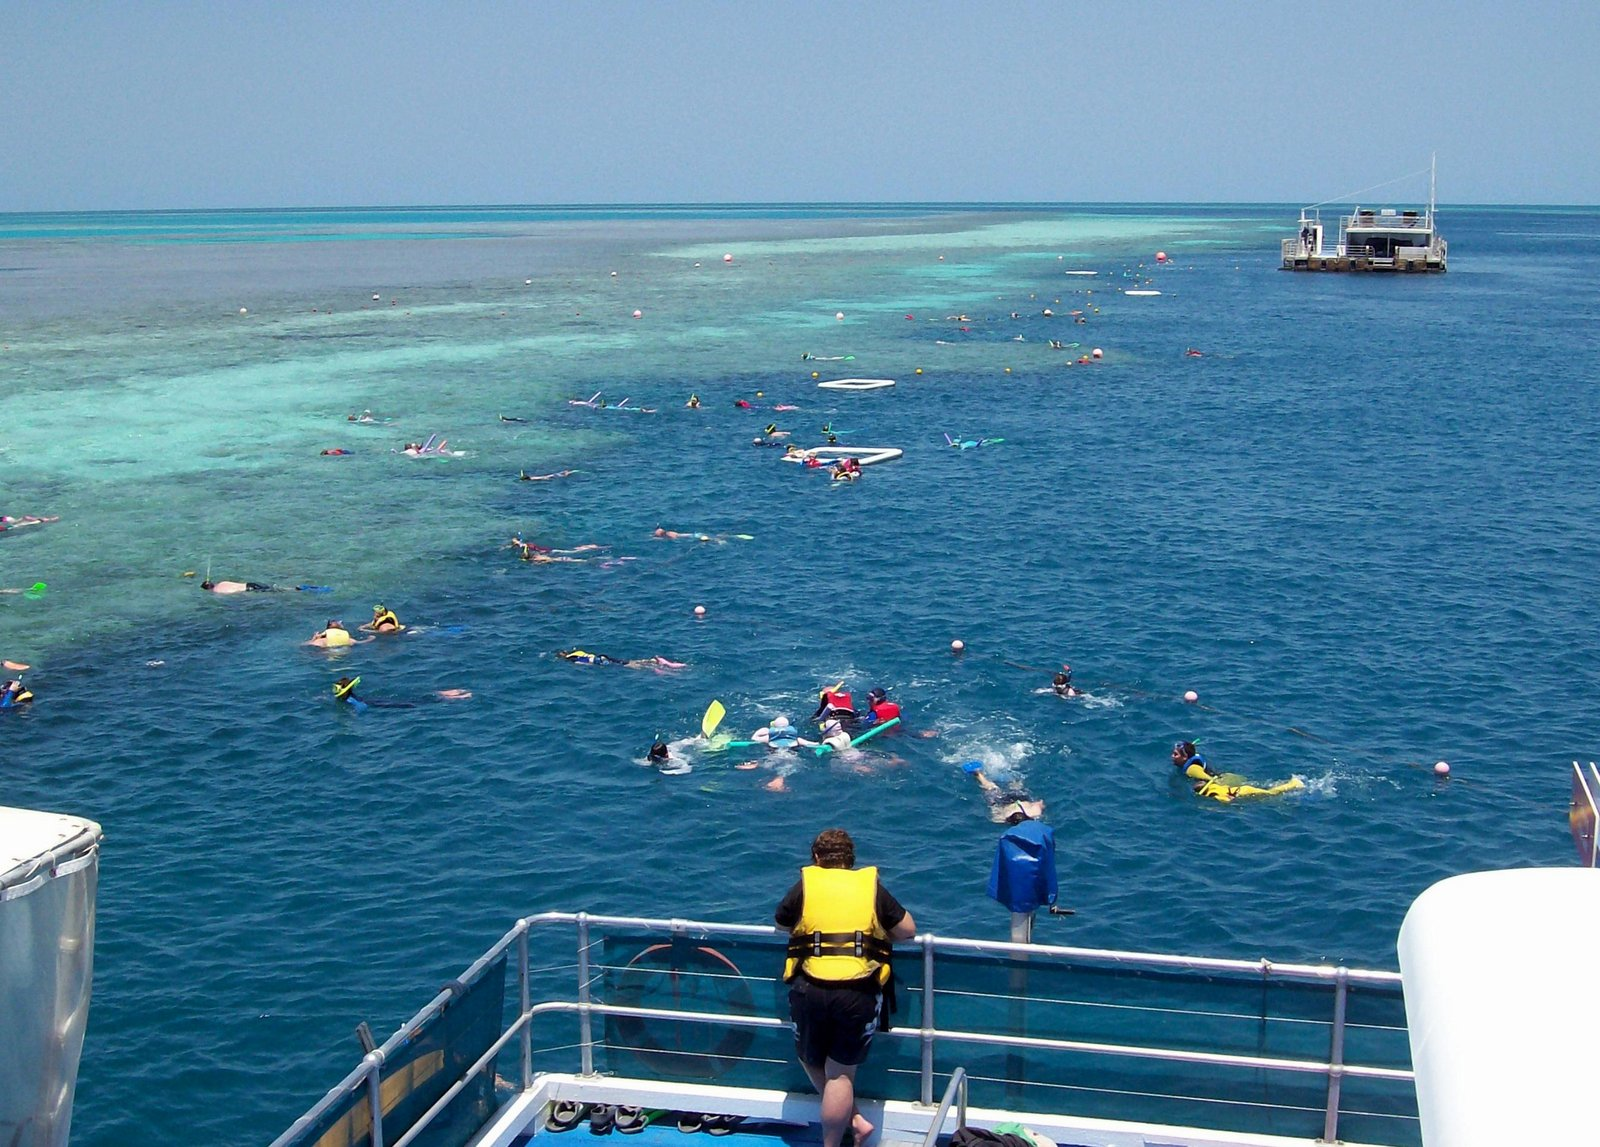 Outer Great Barrier Reef - Reefworld